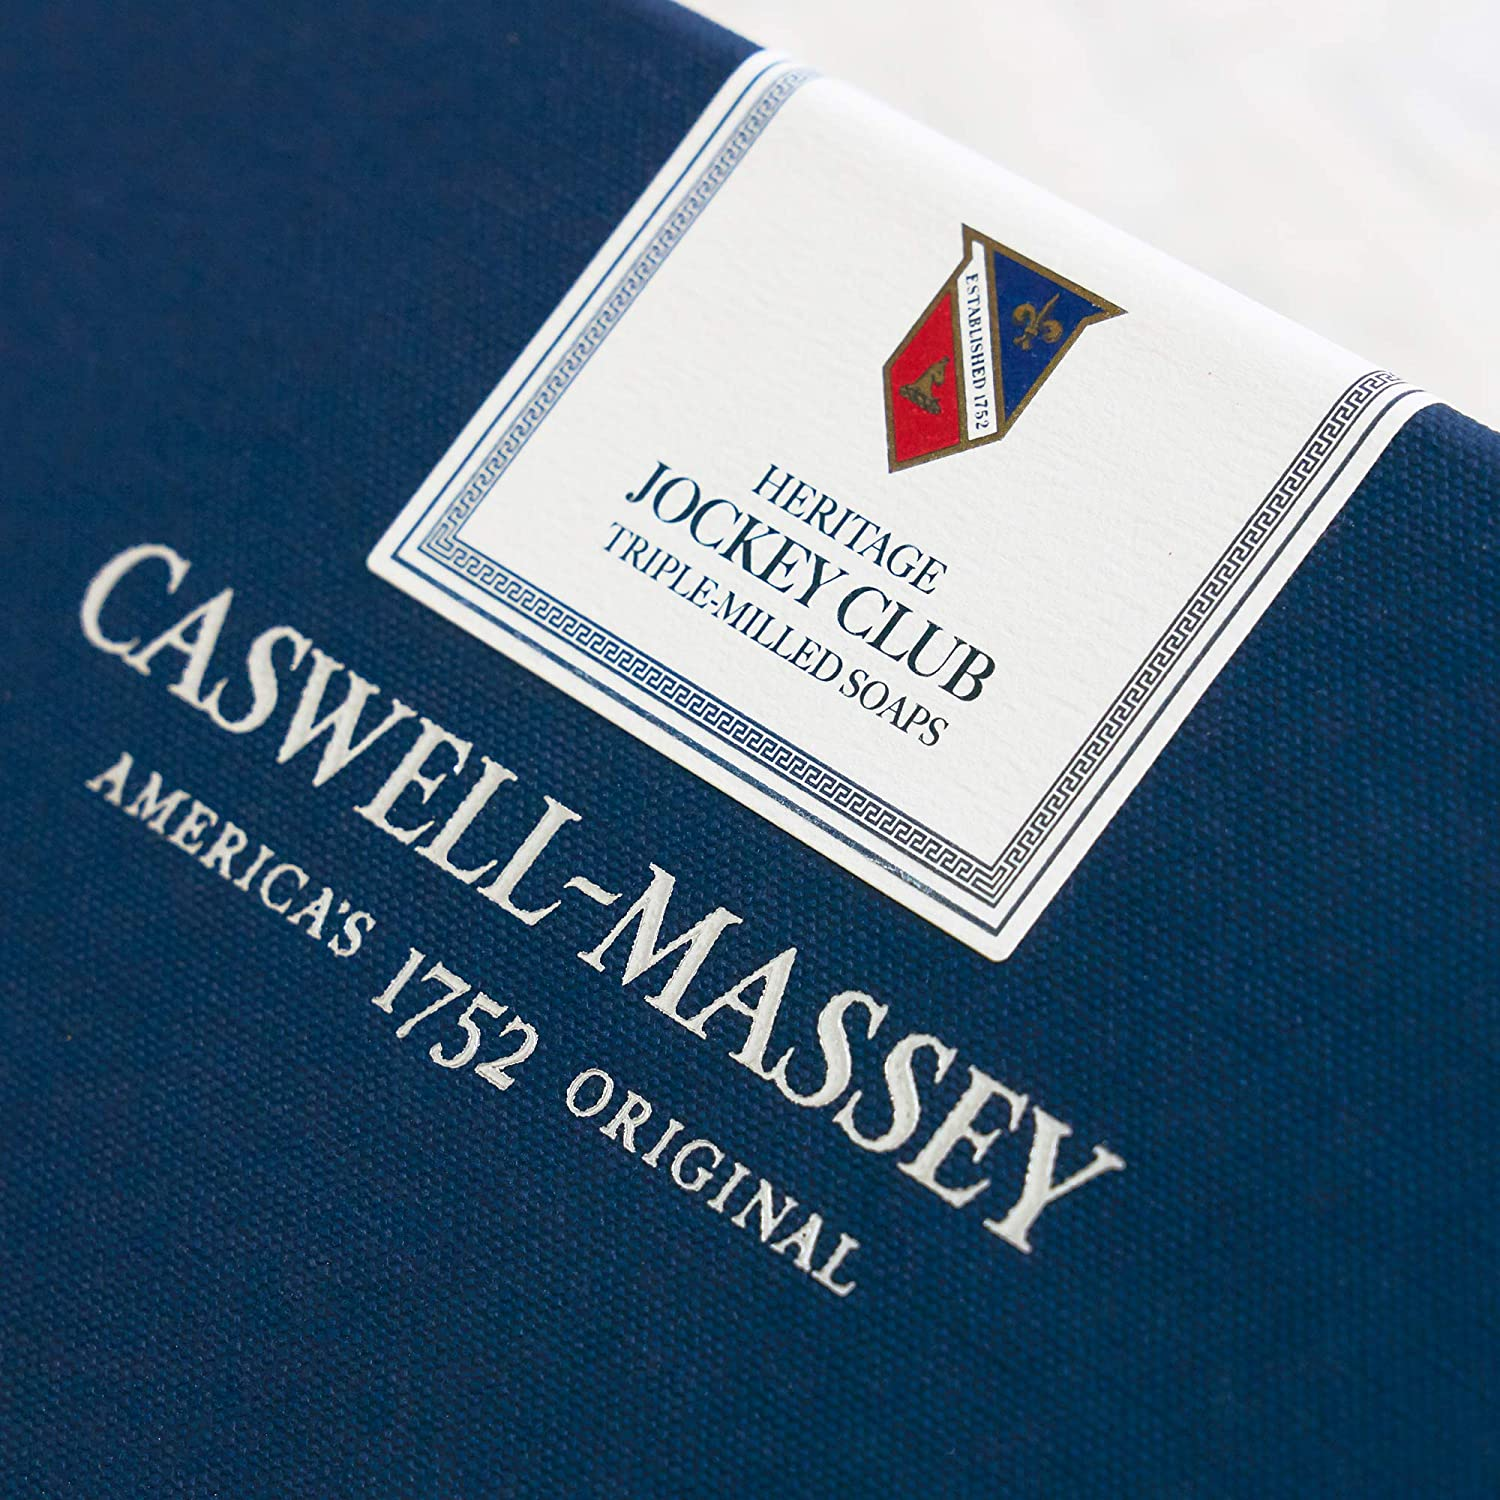 Amazon.com : Caswell-Massey Triple Milled Luxury Bath Soap Set - Jockey Club - 5.8 Ounces Each, 3 Bars : Beauty